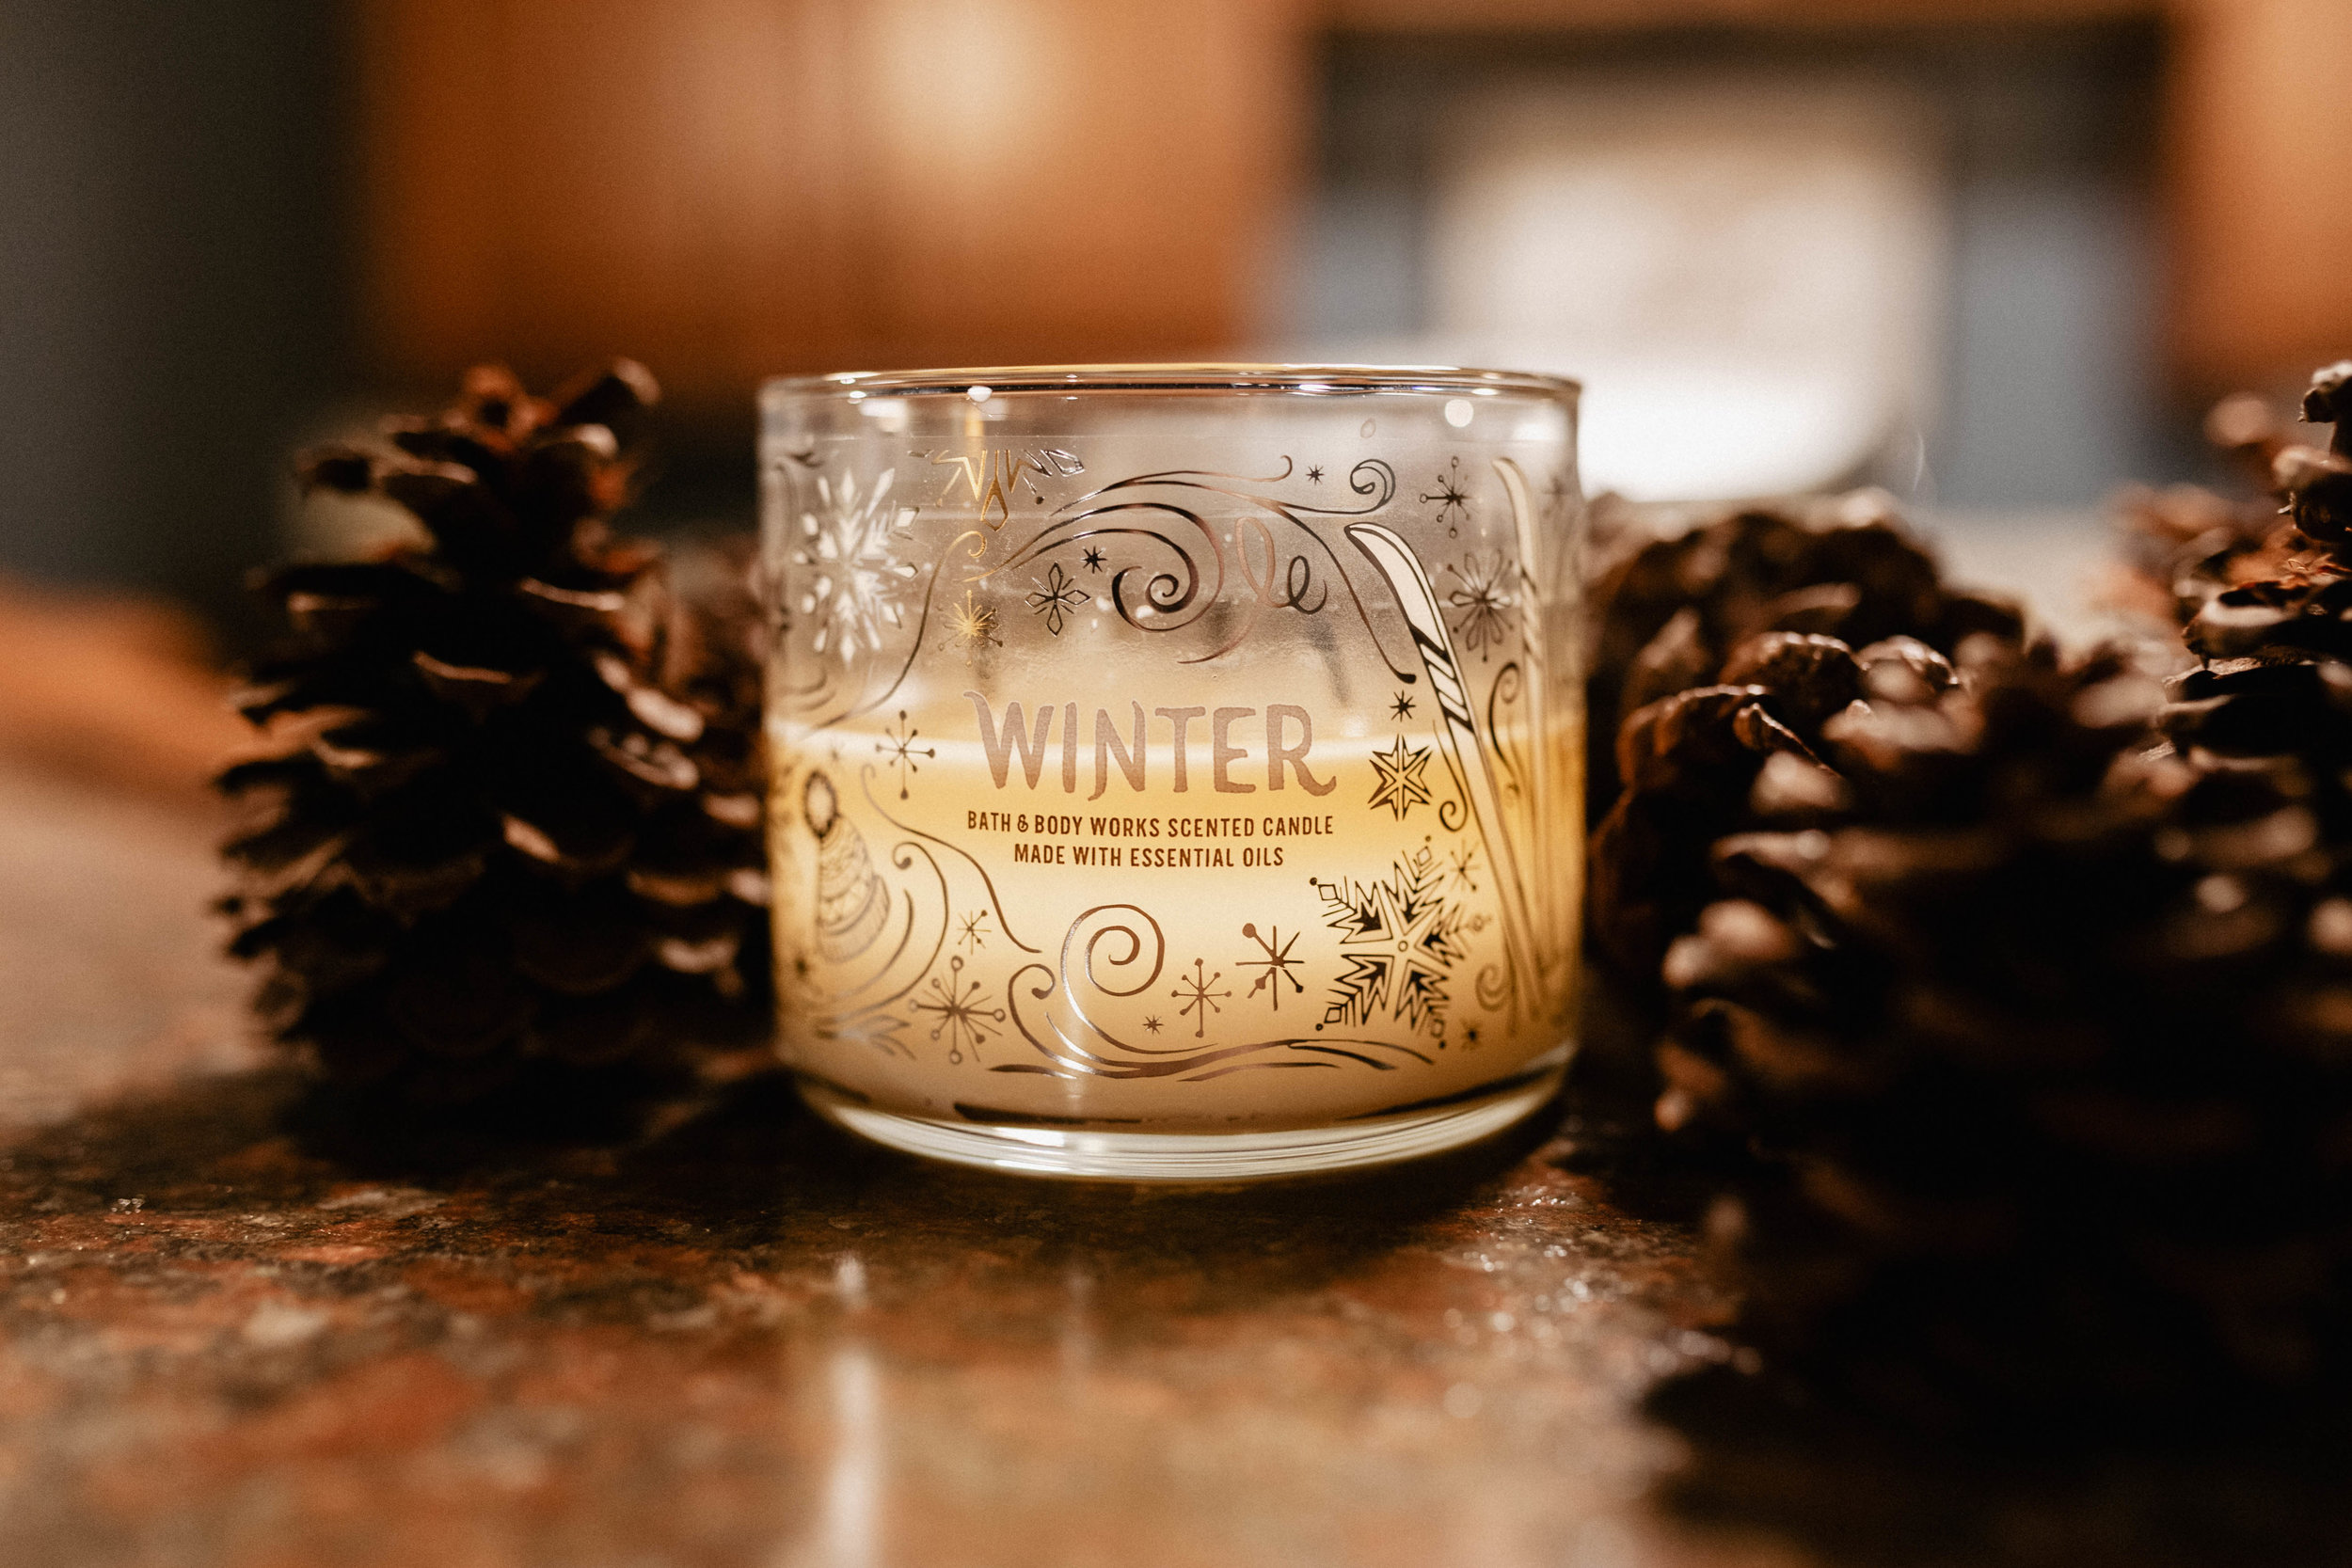 WINTER - This one smells exactly what it sounds like it would smell like. Have you ever wondered what the winter season as a whole smells like? It's this candle. I love this candle because my Nan used to burn it, before she moved, around this time of year when my family would gather together for the holidays. Smells good? Check. Sentimental value? Check. Perfect blend of home, sweet, and spice scents? Check, check, and check.